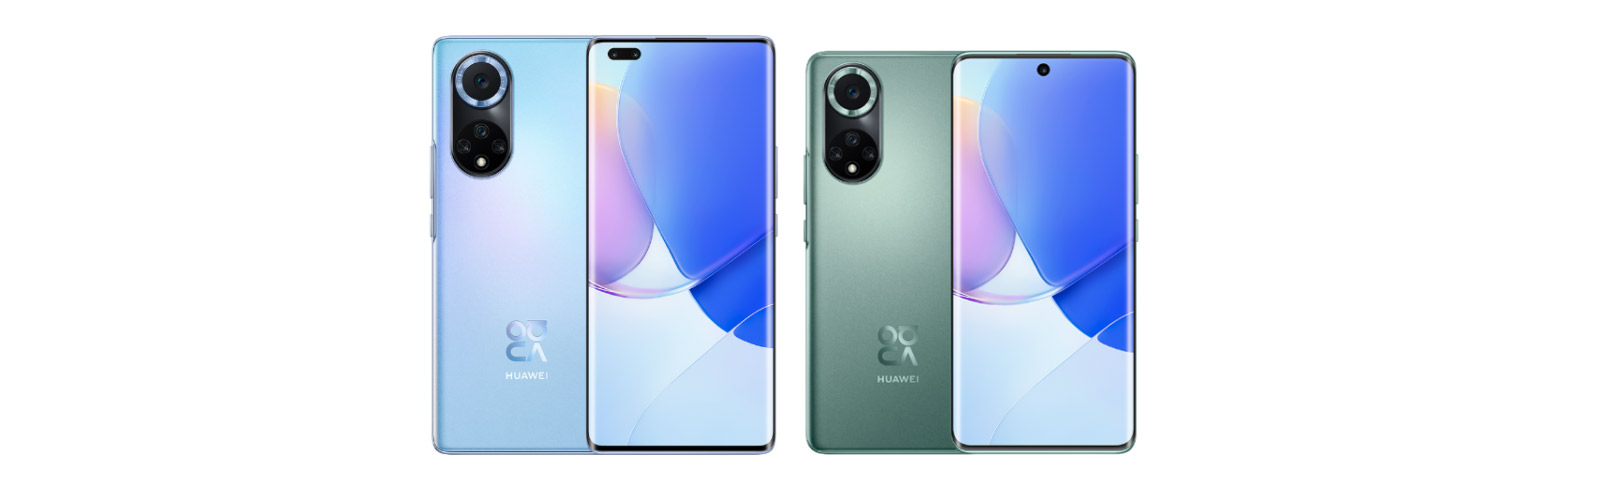 Huawei unveils the nova 9 and nova 9 Pro in China with Snapdragon 778G chipset